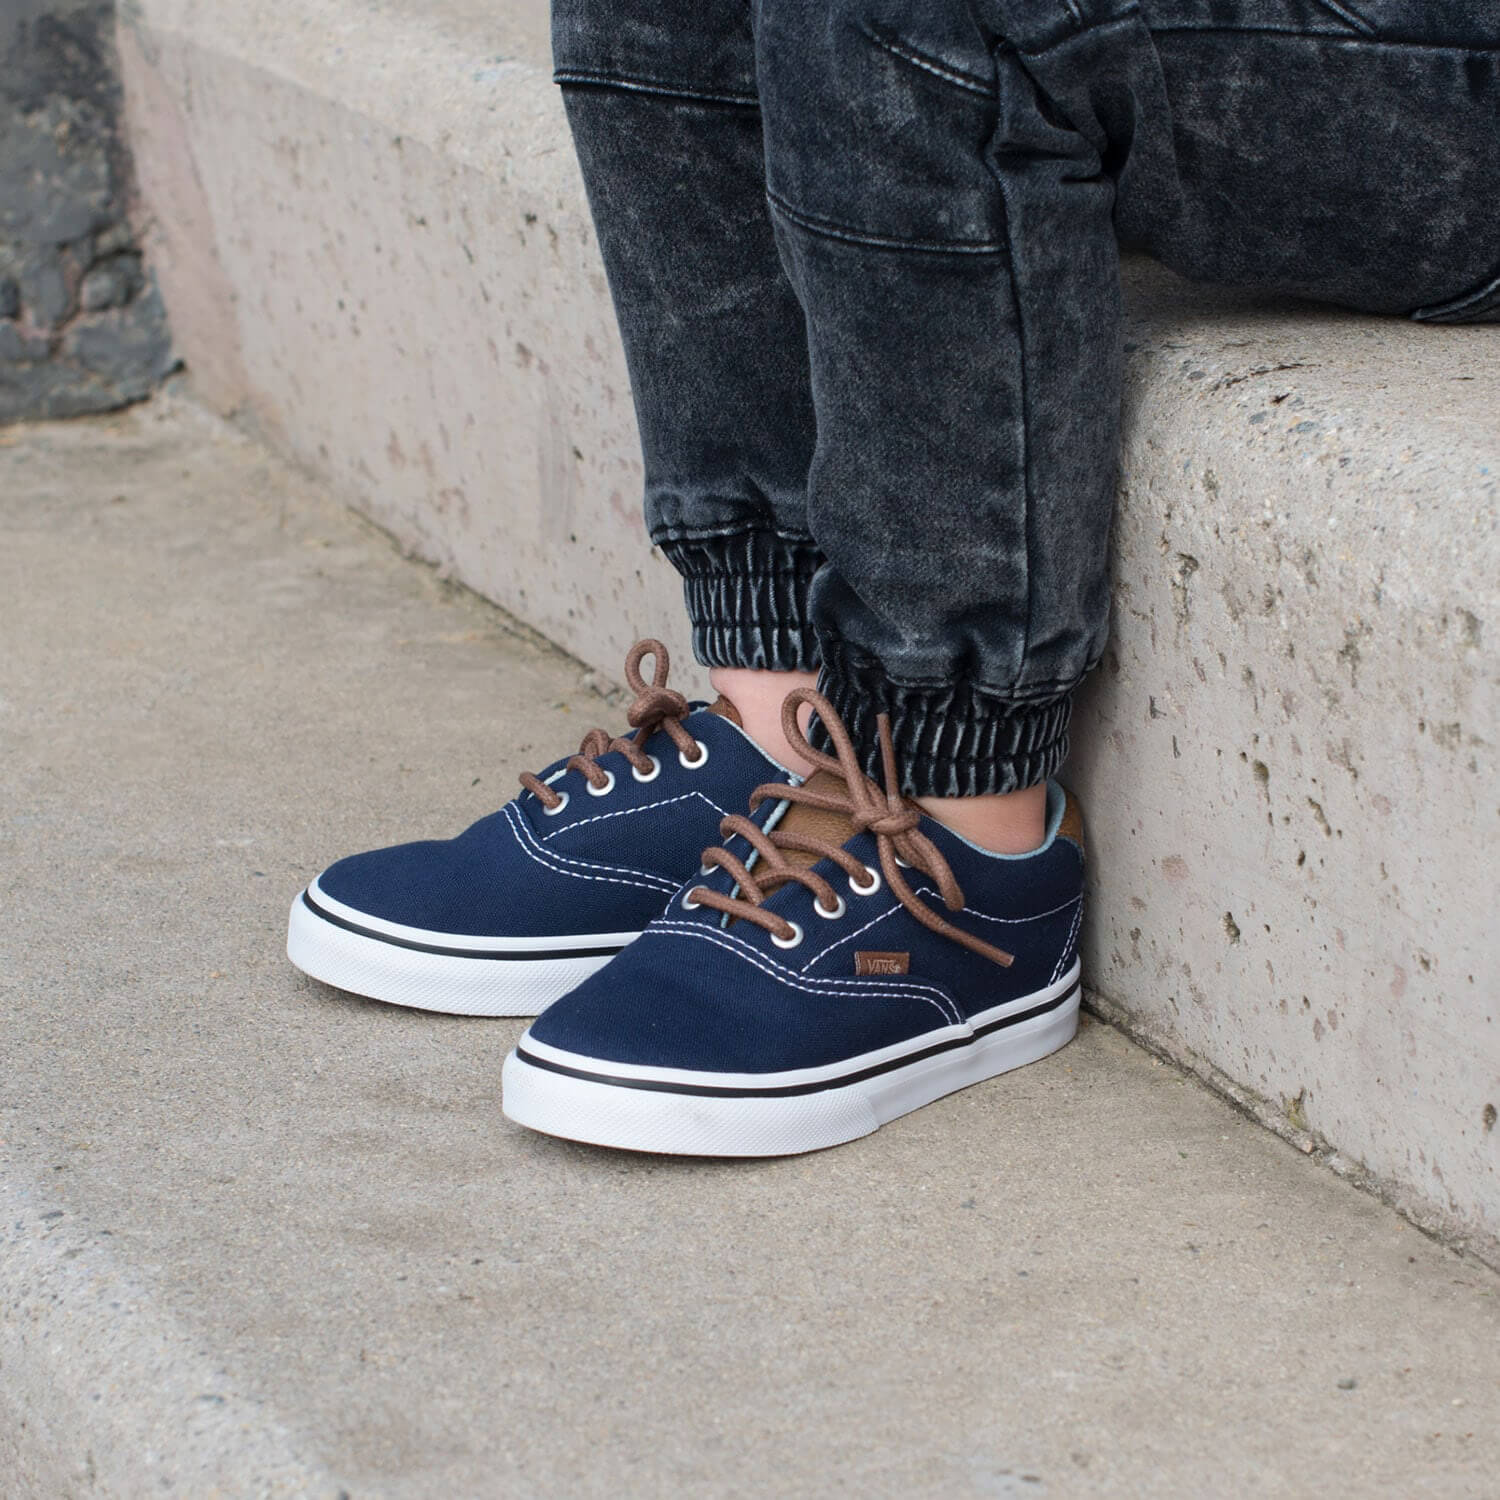 Vans Era 59 Kids Sneaker – Navy Lifestyle 3